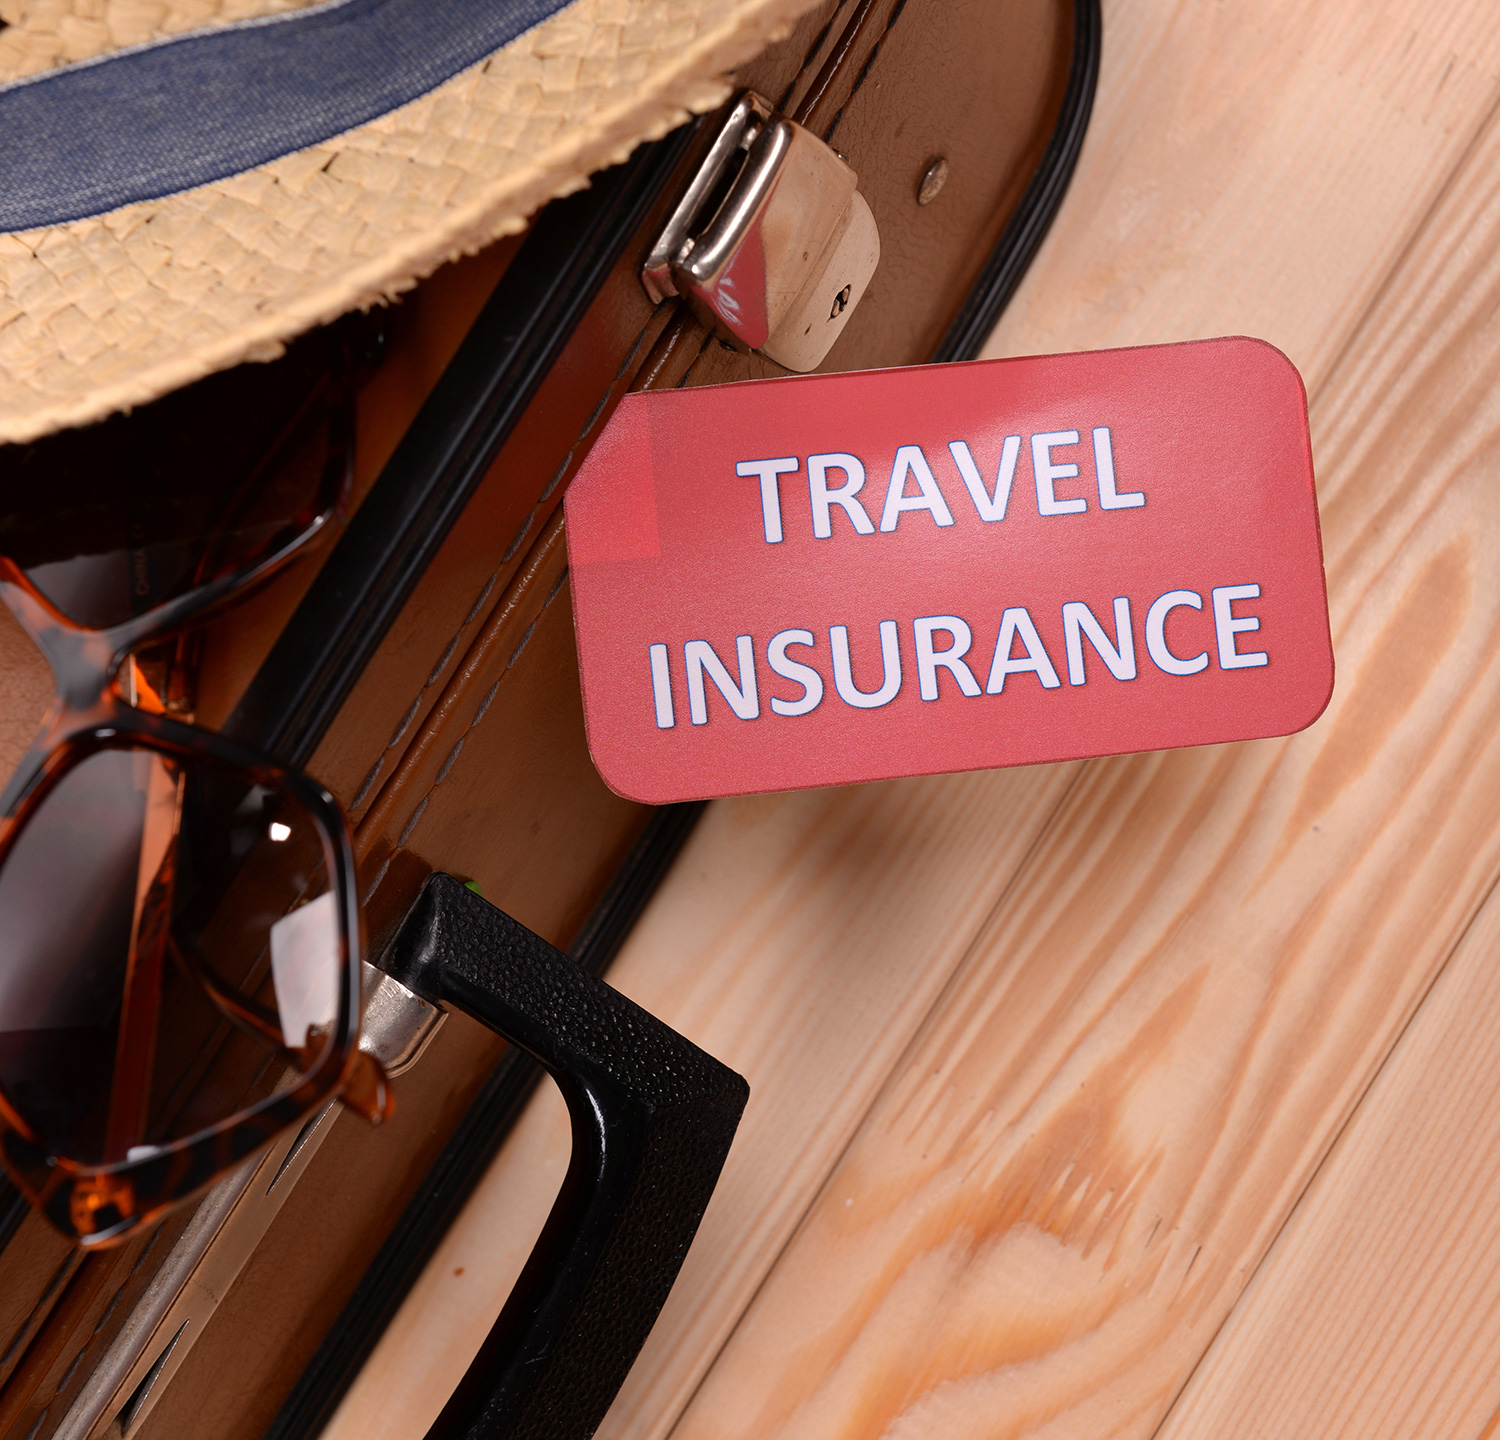 Answering the 'why': A good travel insurance plan secures you from pitfalls, right from trip cancellation to delays and loss of baggage or passport. If you have bought a non-refundable airfare and have a long travel itinerary, it is wise to get travel insurance.  If you travel often, it is better to get annual cover that will be a cheaper option than buying one close to the date of journey. Such an insurance plan will cover all personal and business travel requirements. In case you meet with an accident or have a medical emergency, travel insurance saves you from shelling out thousands of dollars, thanks to cashless payments offered by most companies.